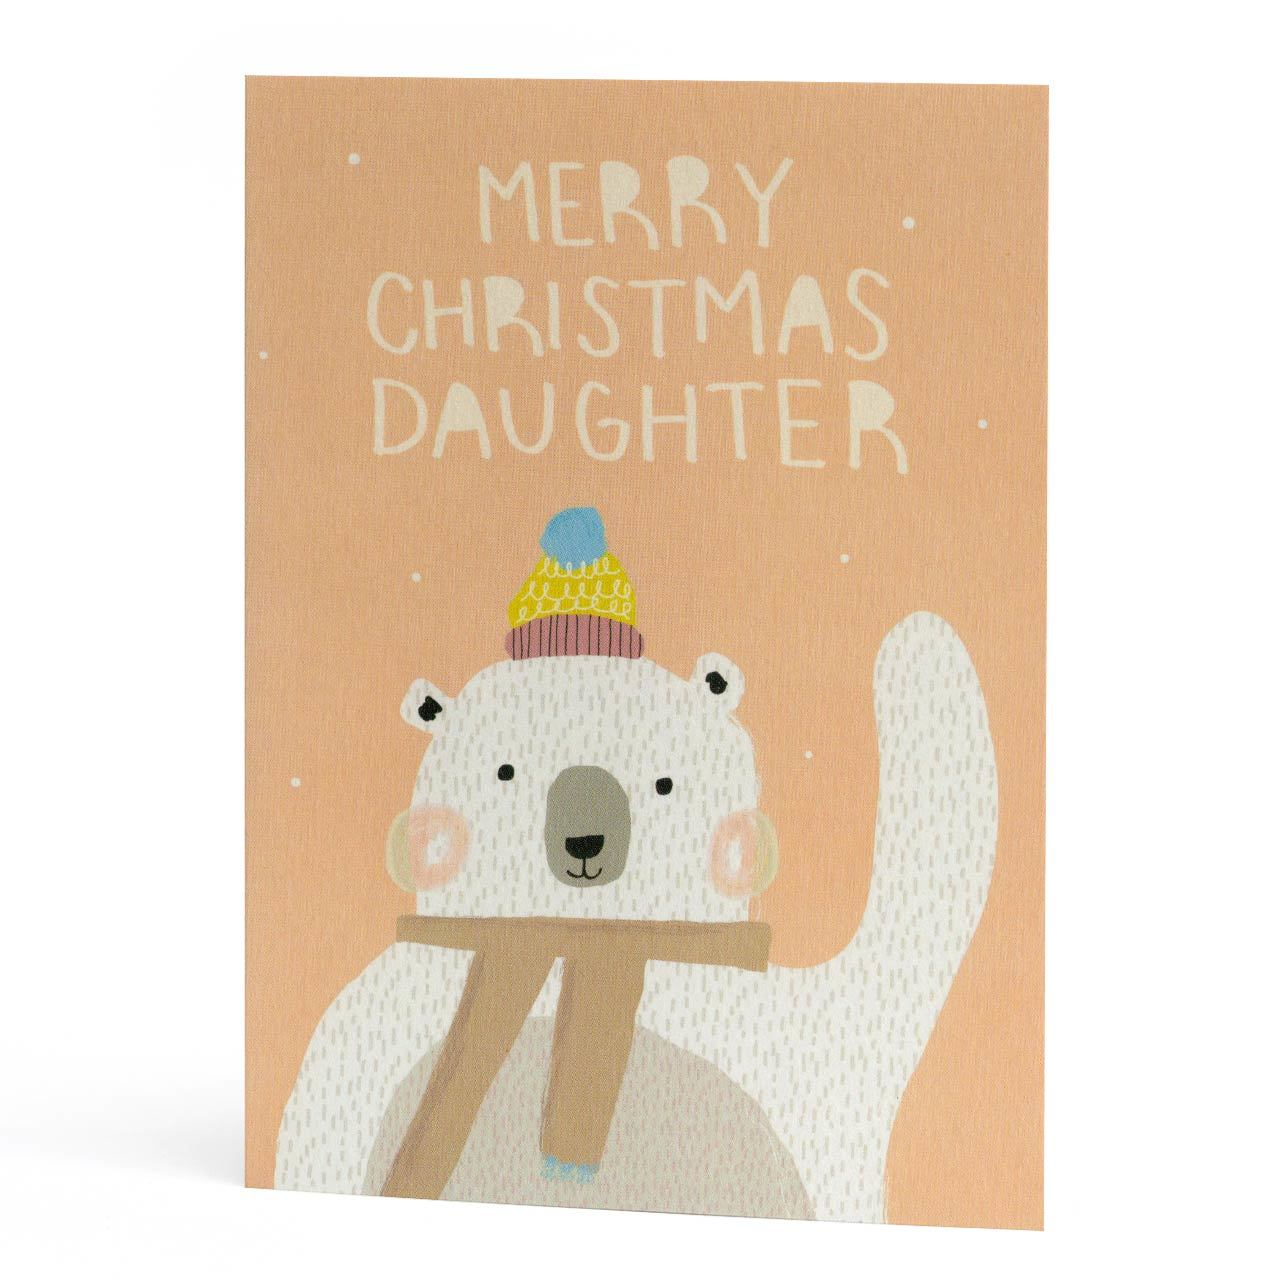 Merry Christmas Daughter Greeting Card